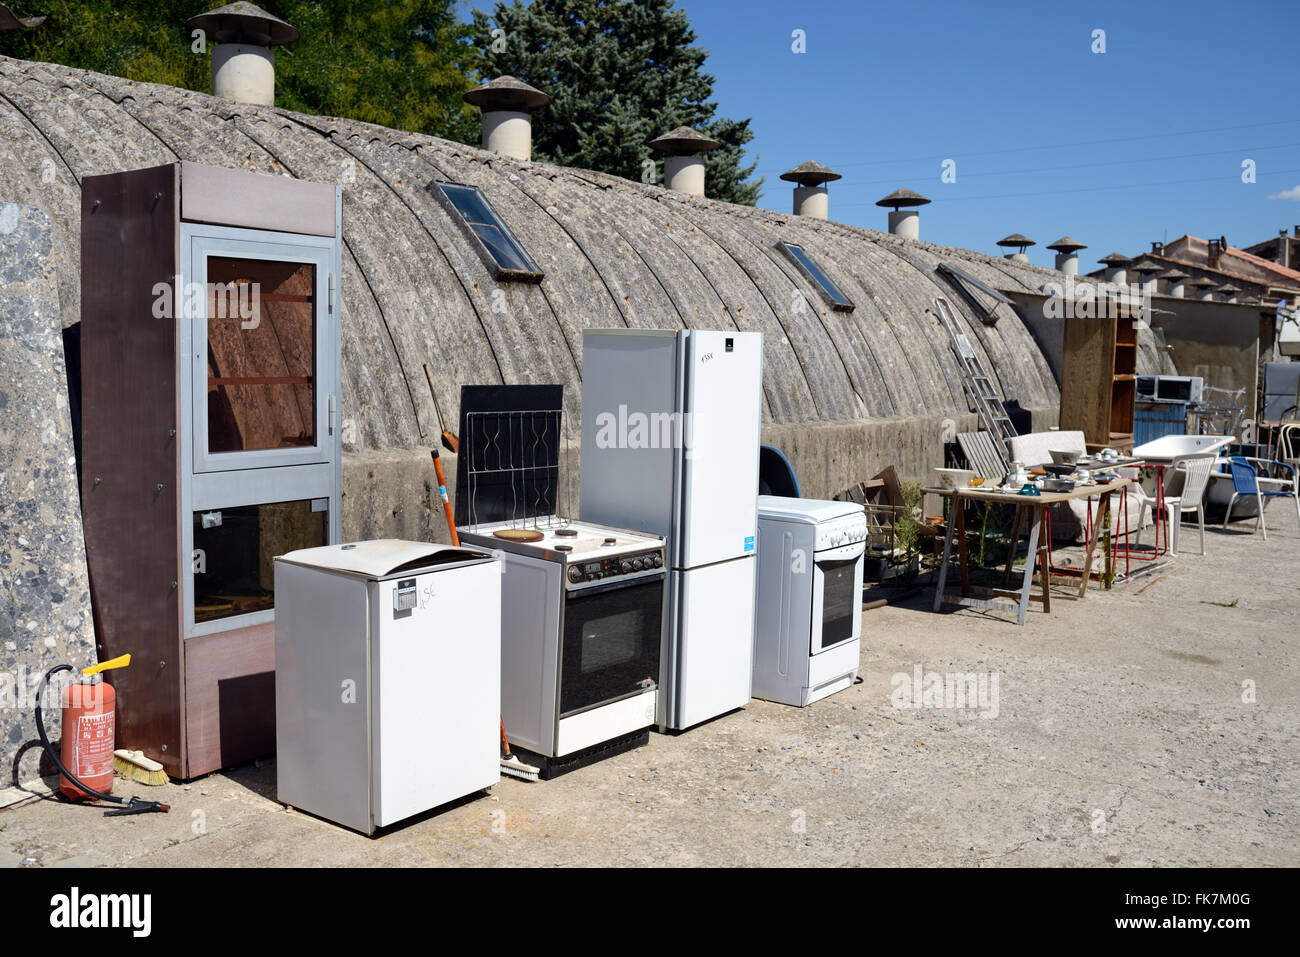 Fridges For Sale Stockfotos & Fridges For Sale Bilder - Alamy